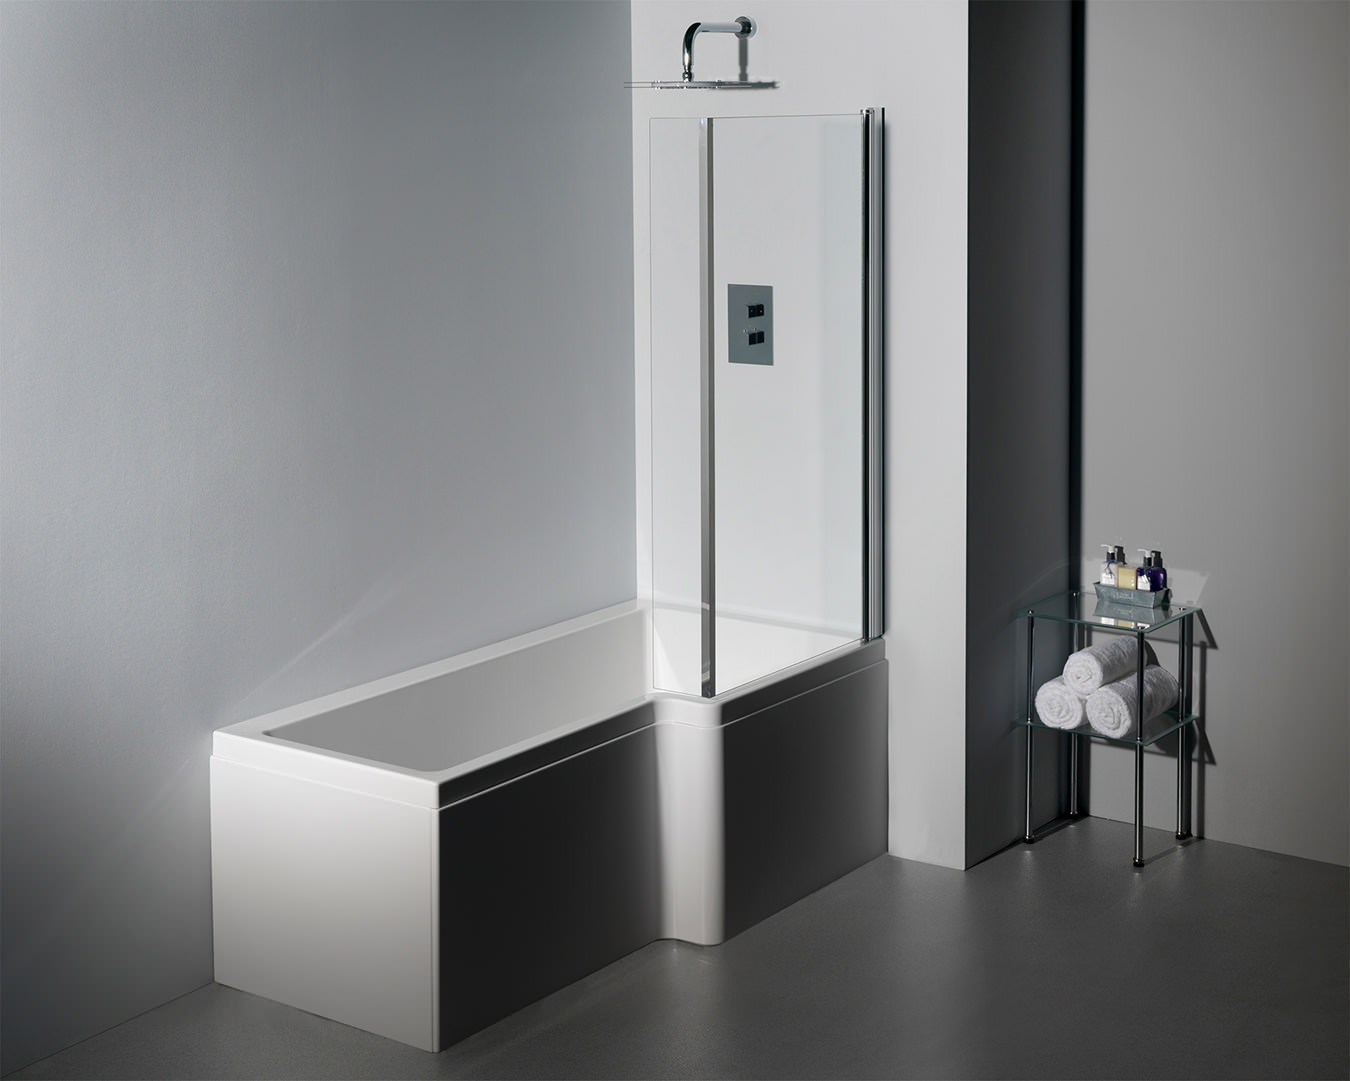 carron quantum square 5mm acrylic shower bath 1500 x 850mm rh q4 additional image of carron quantum square 5mm acrylic shower bath 1500 x 850mm right hand